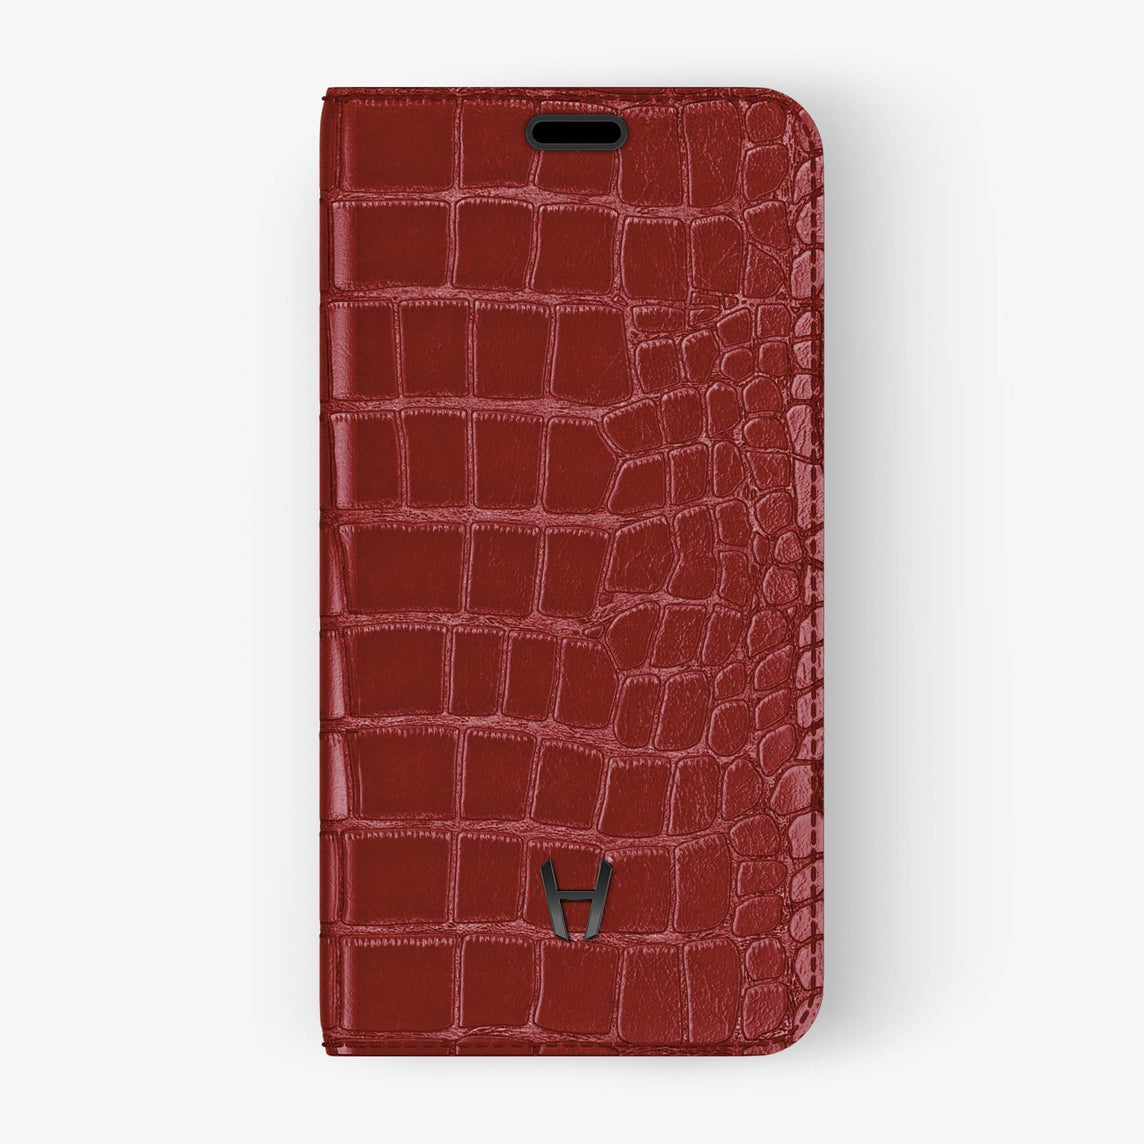 Red Alligator iPhone Folio Case for iPhone XS Max finishing black - Hadoro Luxury Cases